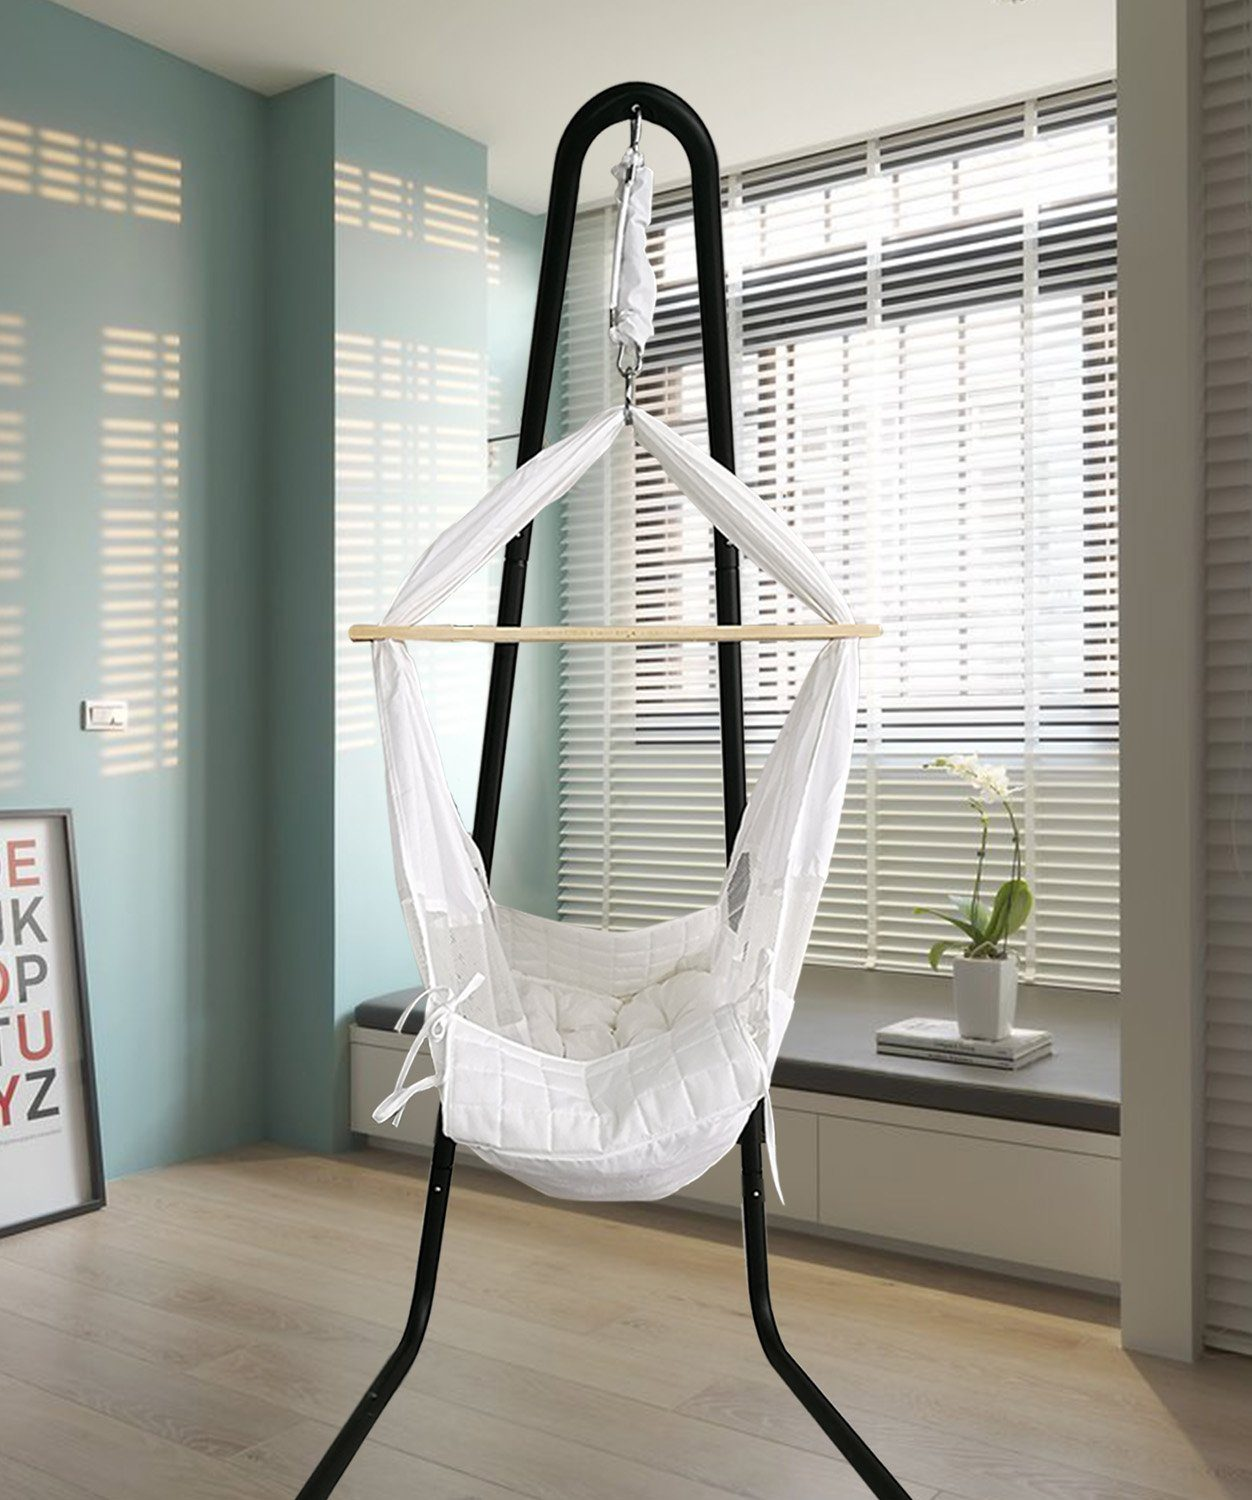 Baby Hammock Cradle Swing Crib With Stand Hanging Bassinet For Nursery Newborn Hanging Chairs